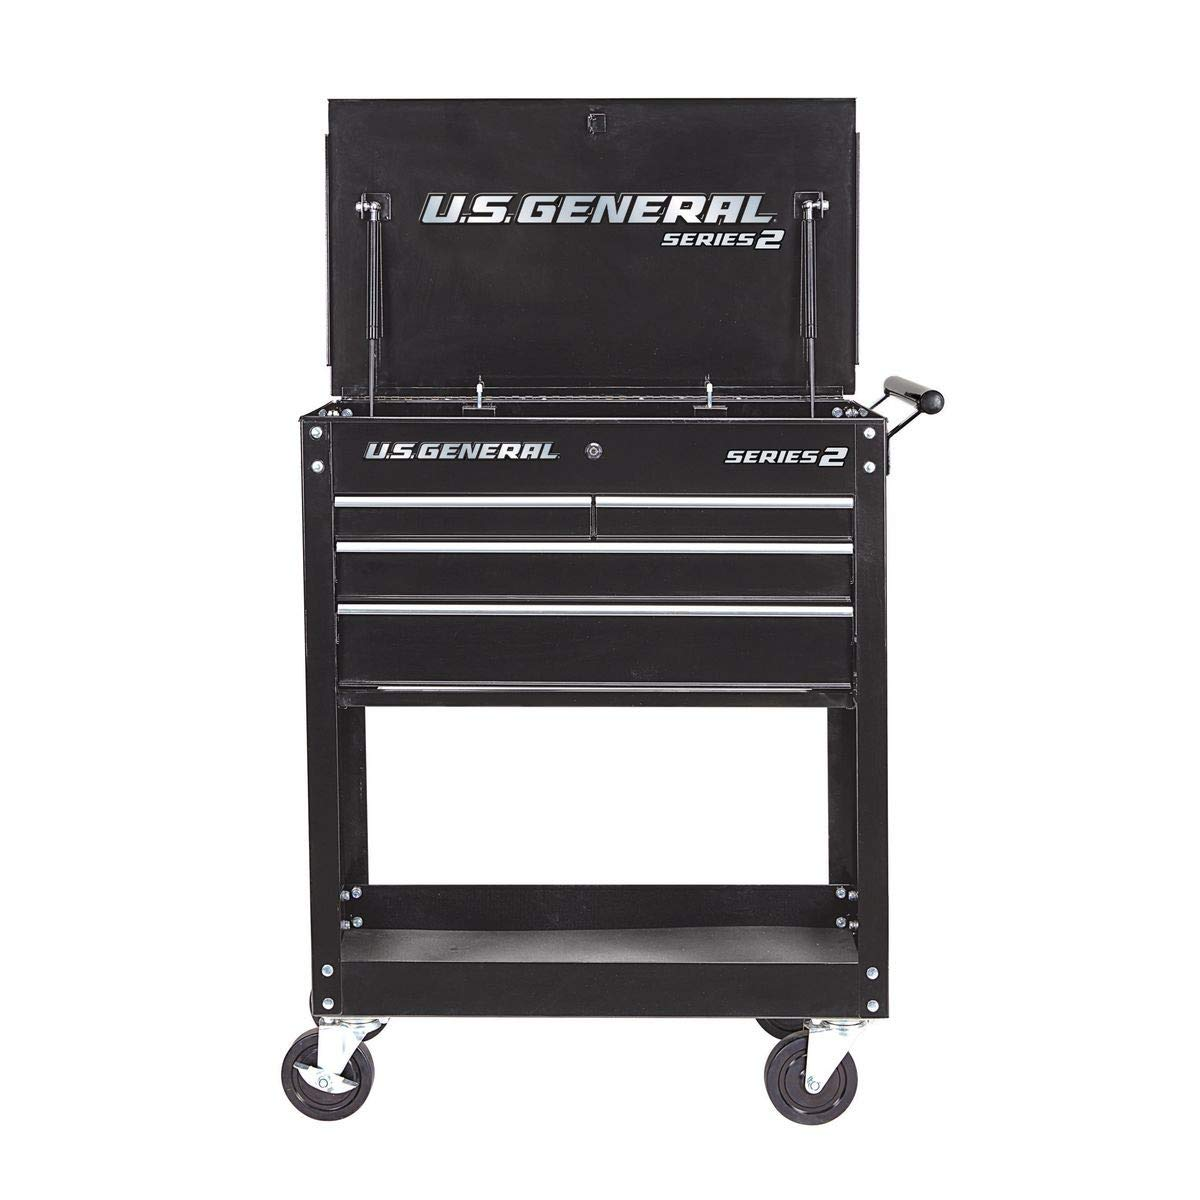 NEW!!! 2020 Design 30 In. 4 Drawer Presidential Black Tech Cart by U.S. GENERAL SERIES 2